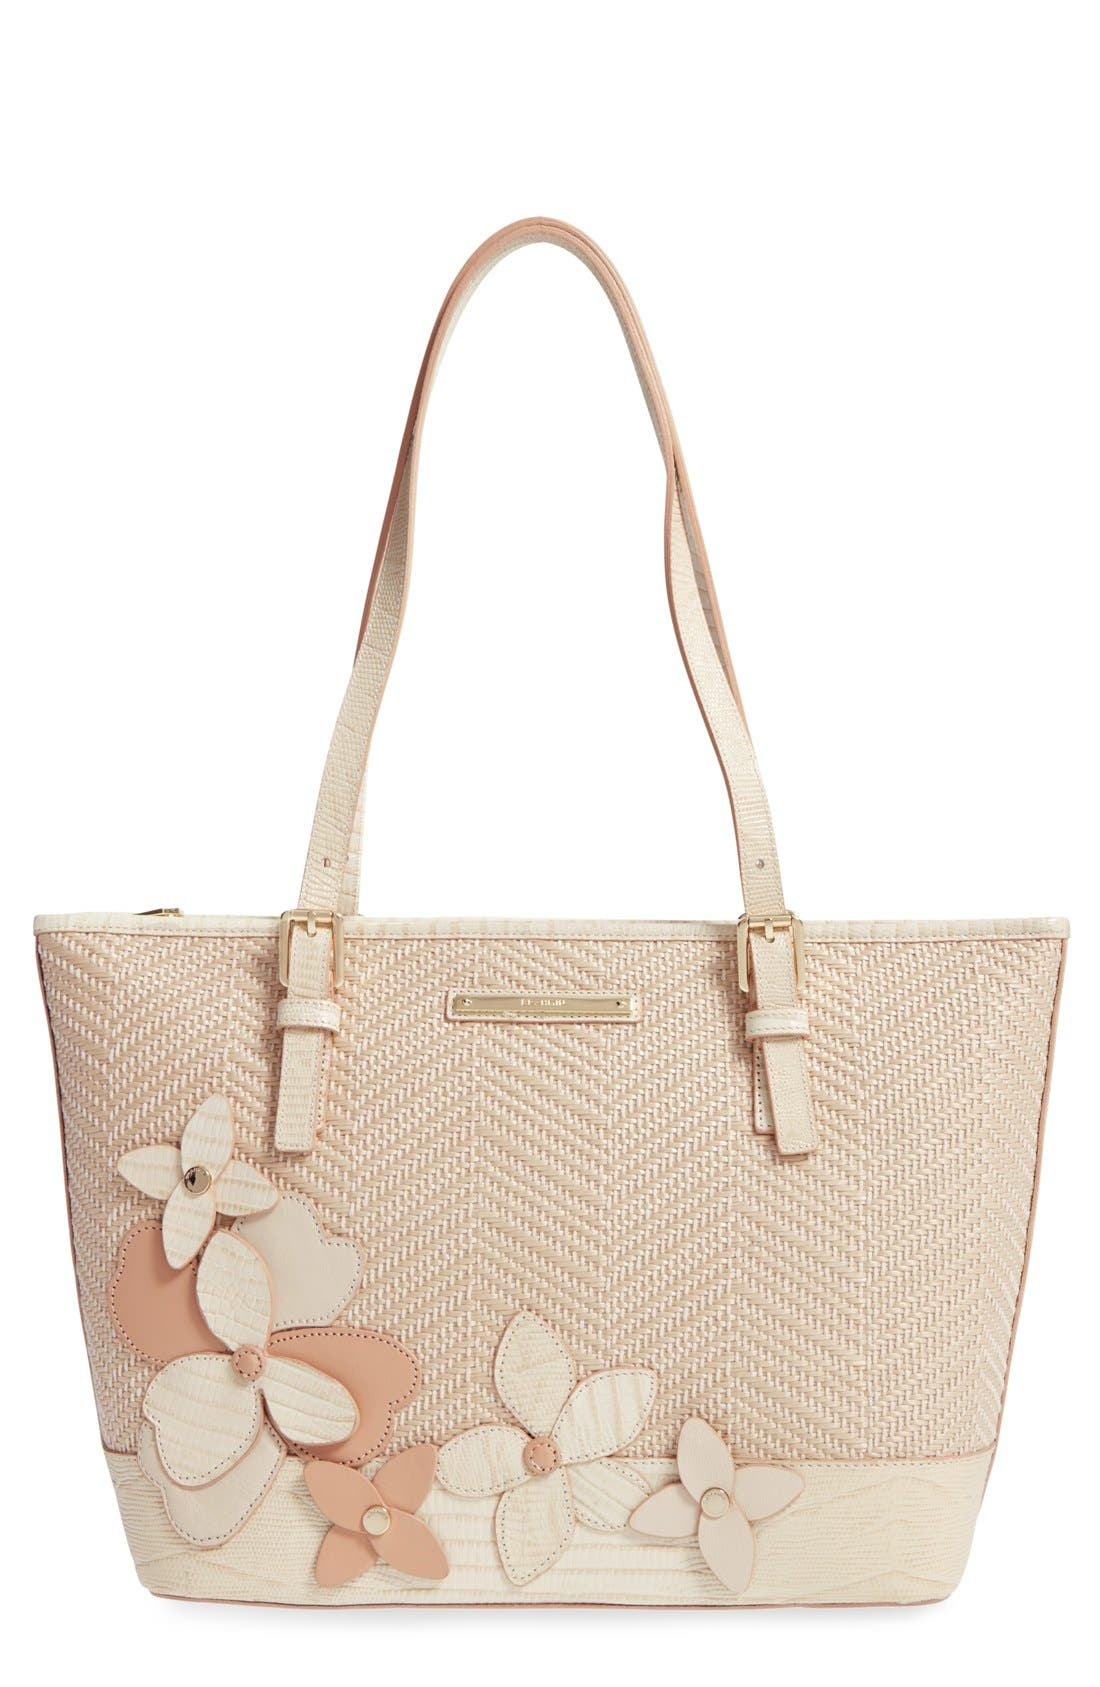 Alternate Image 1 Selected - Brahmin 'Medium Asher' Floral Embellished Woven Tote